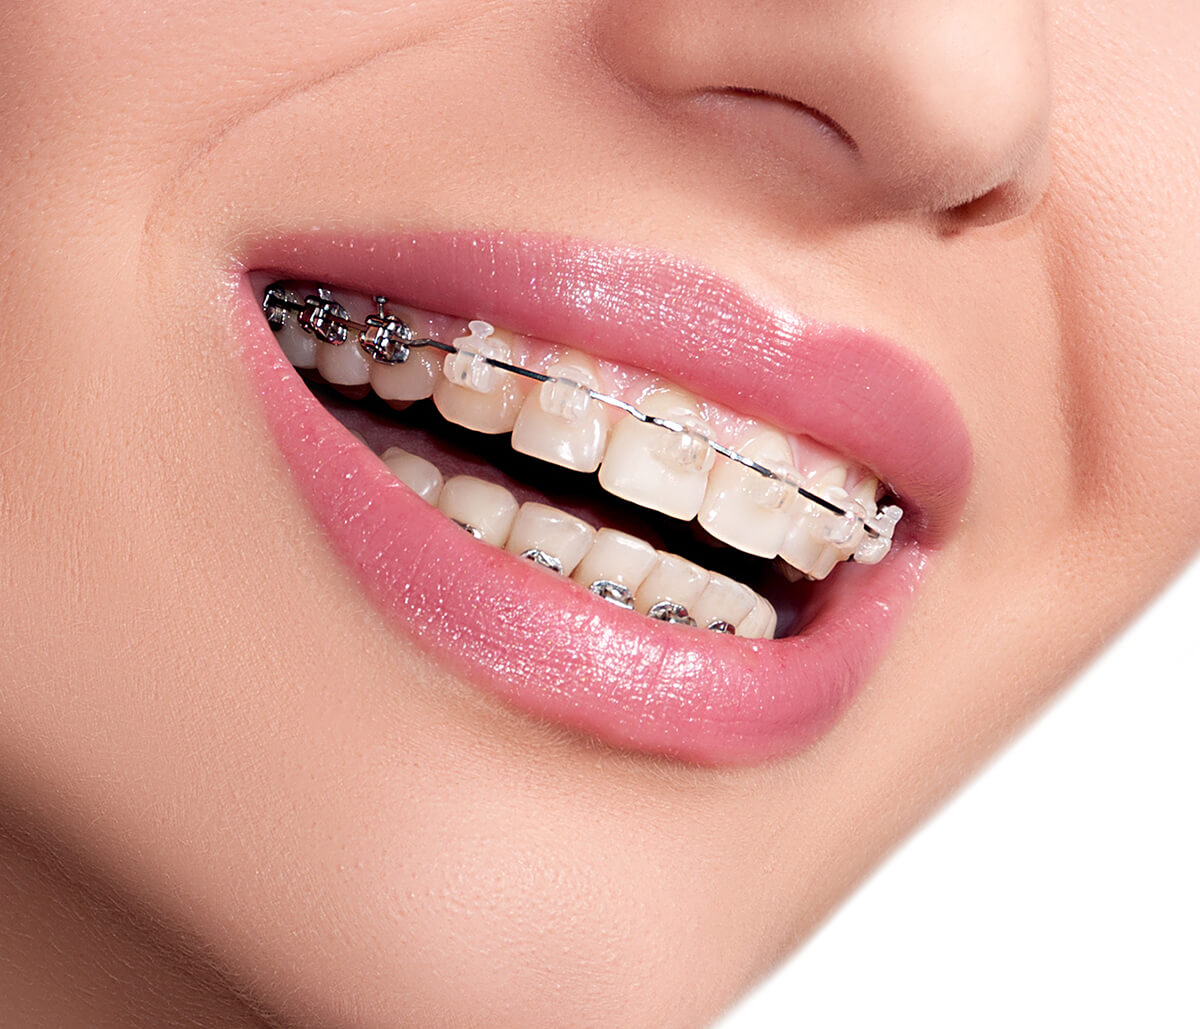 The Process Of Getting Clear Braces In Mission Viejo Area